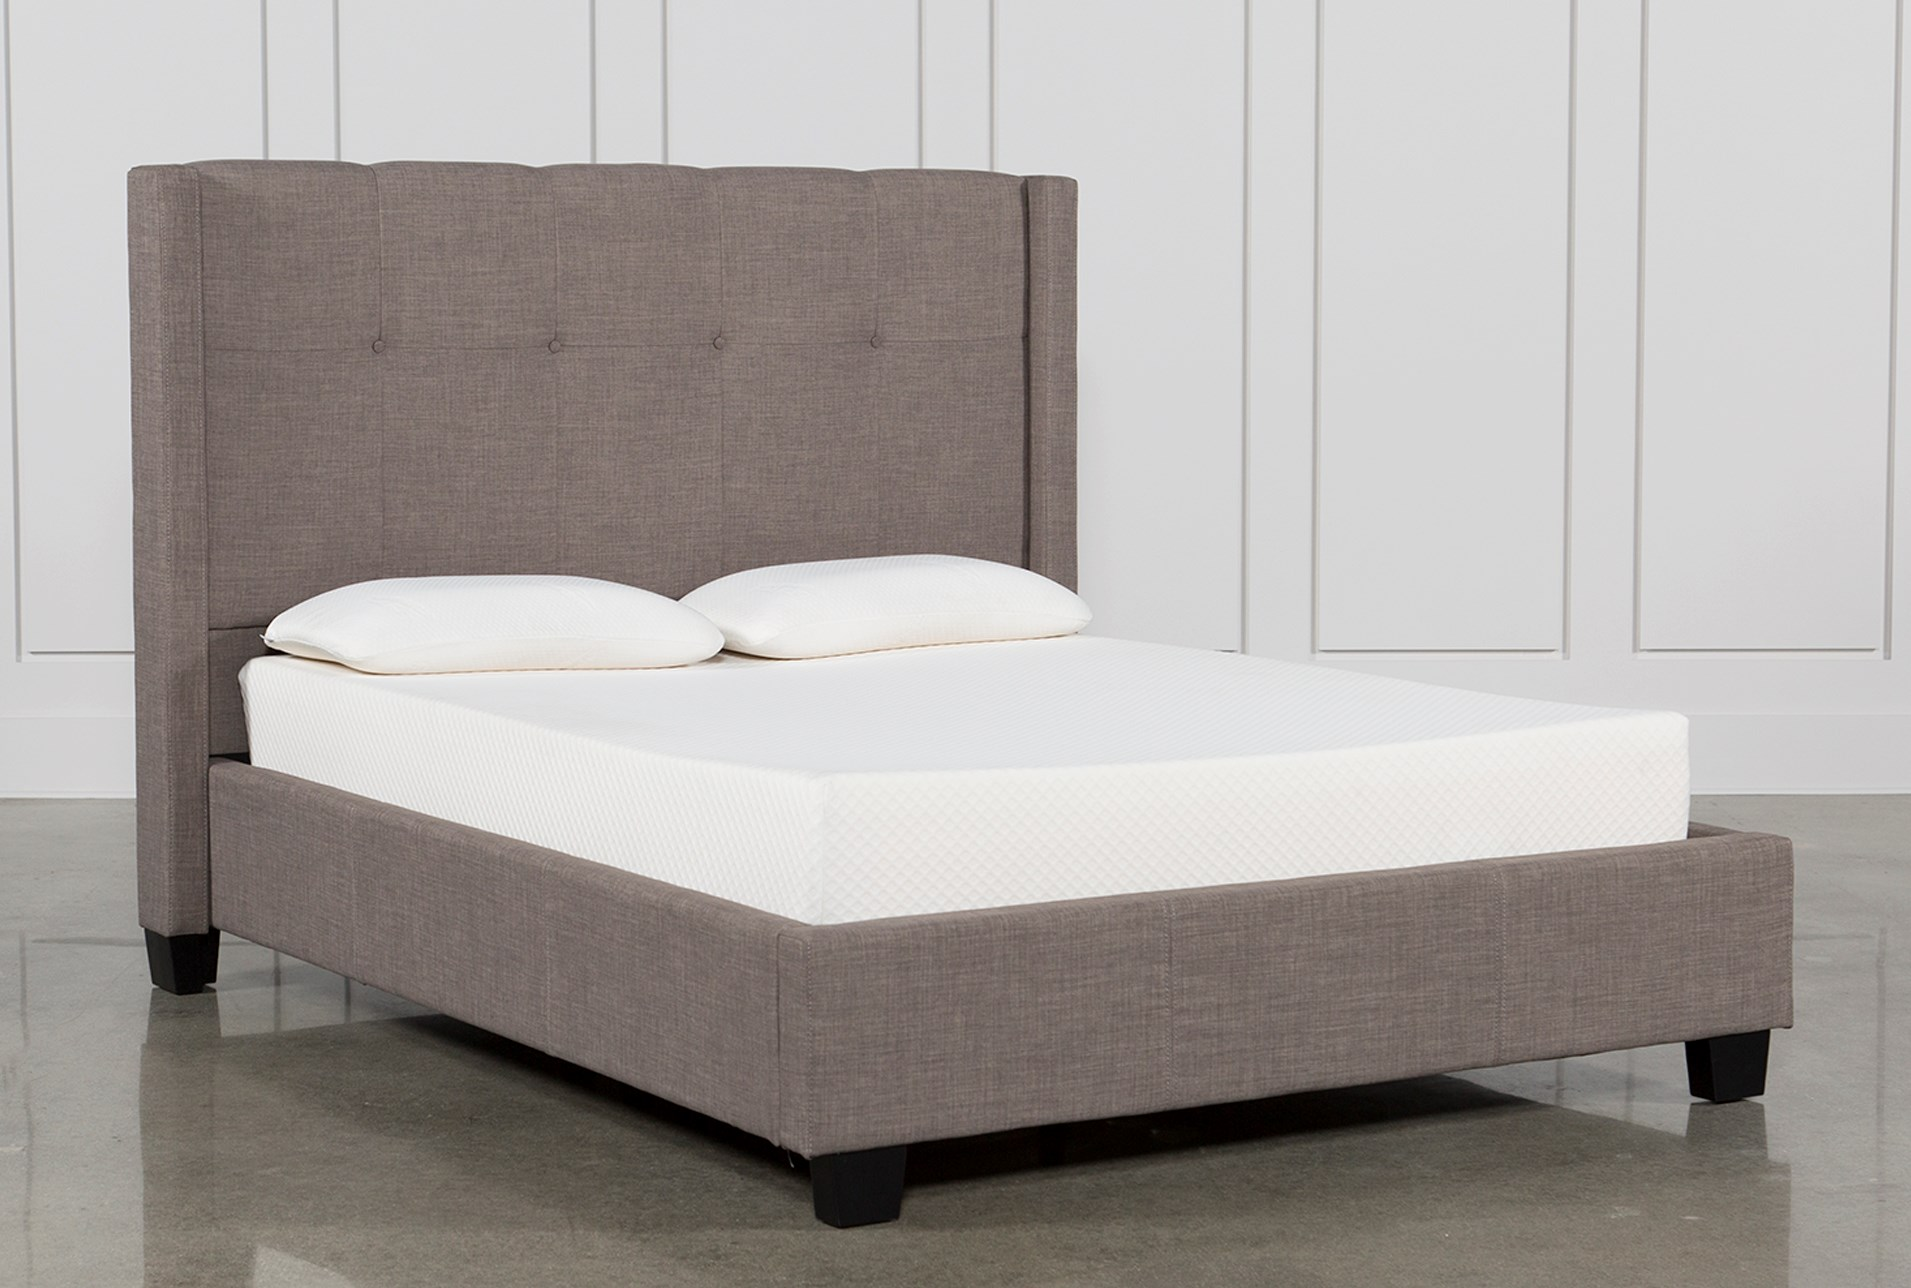 Damon Stone Queen Upholstered Platform Bed Qty 1 Has Been Successfully Added To Your Cart